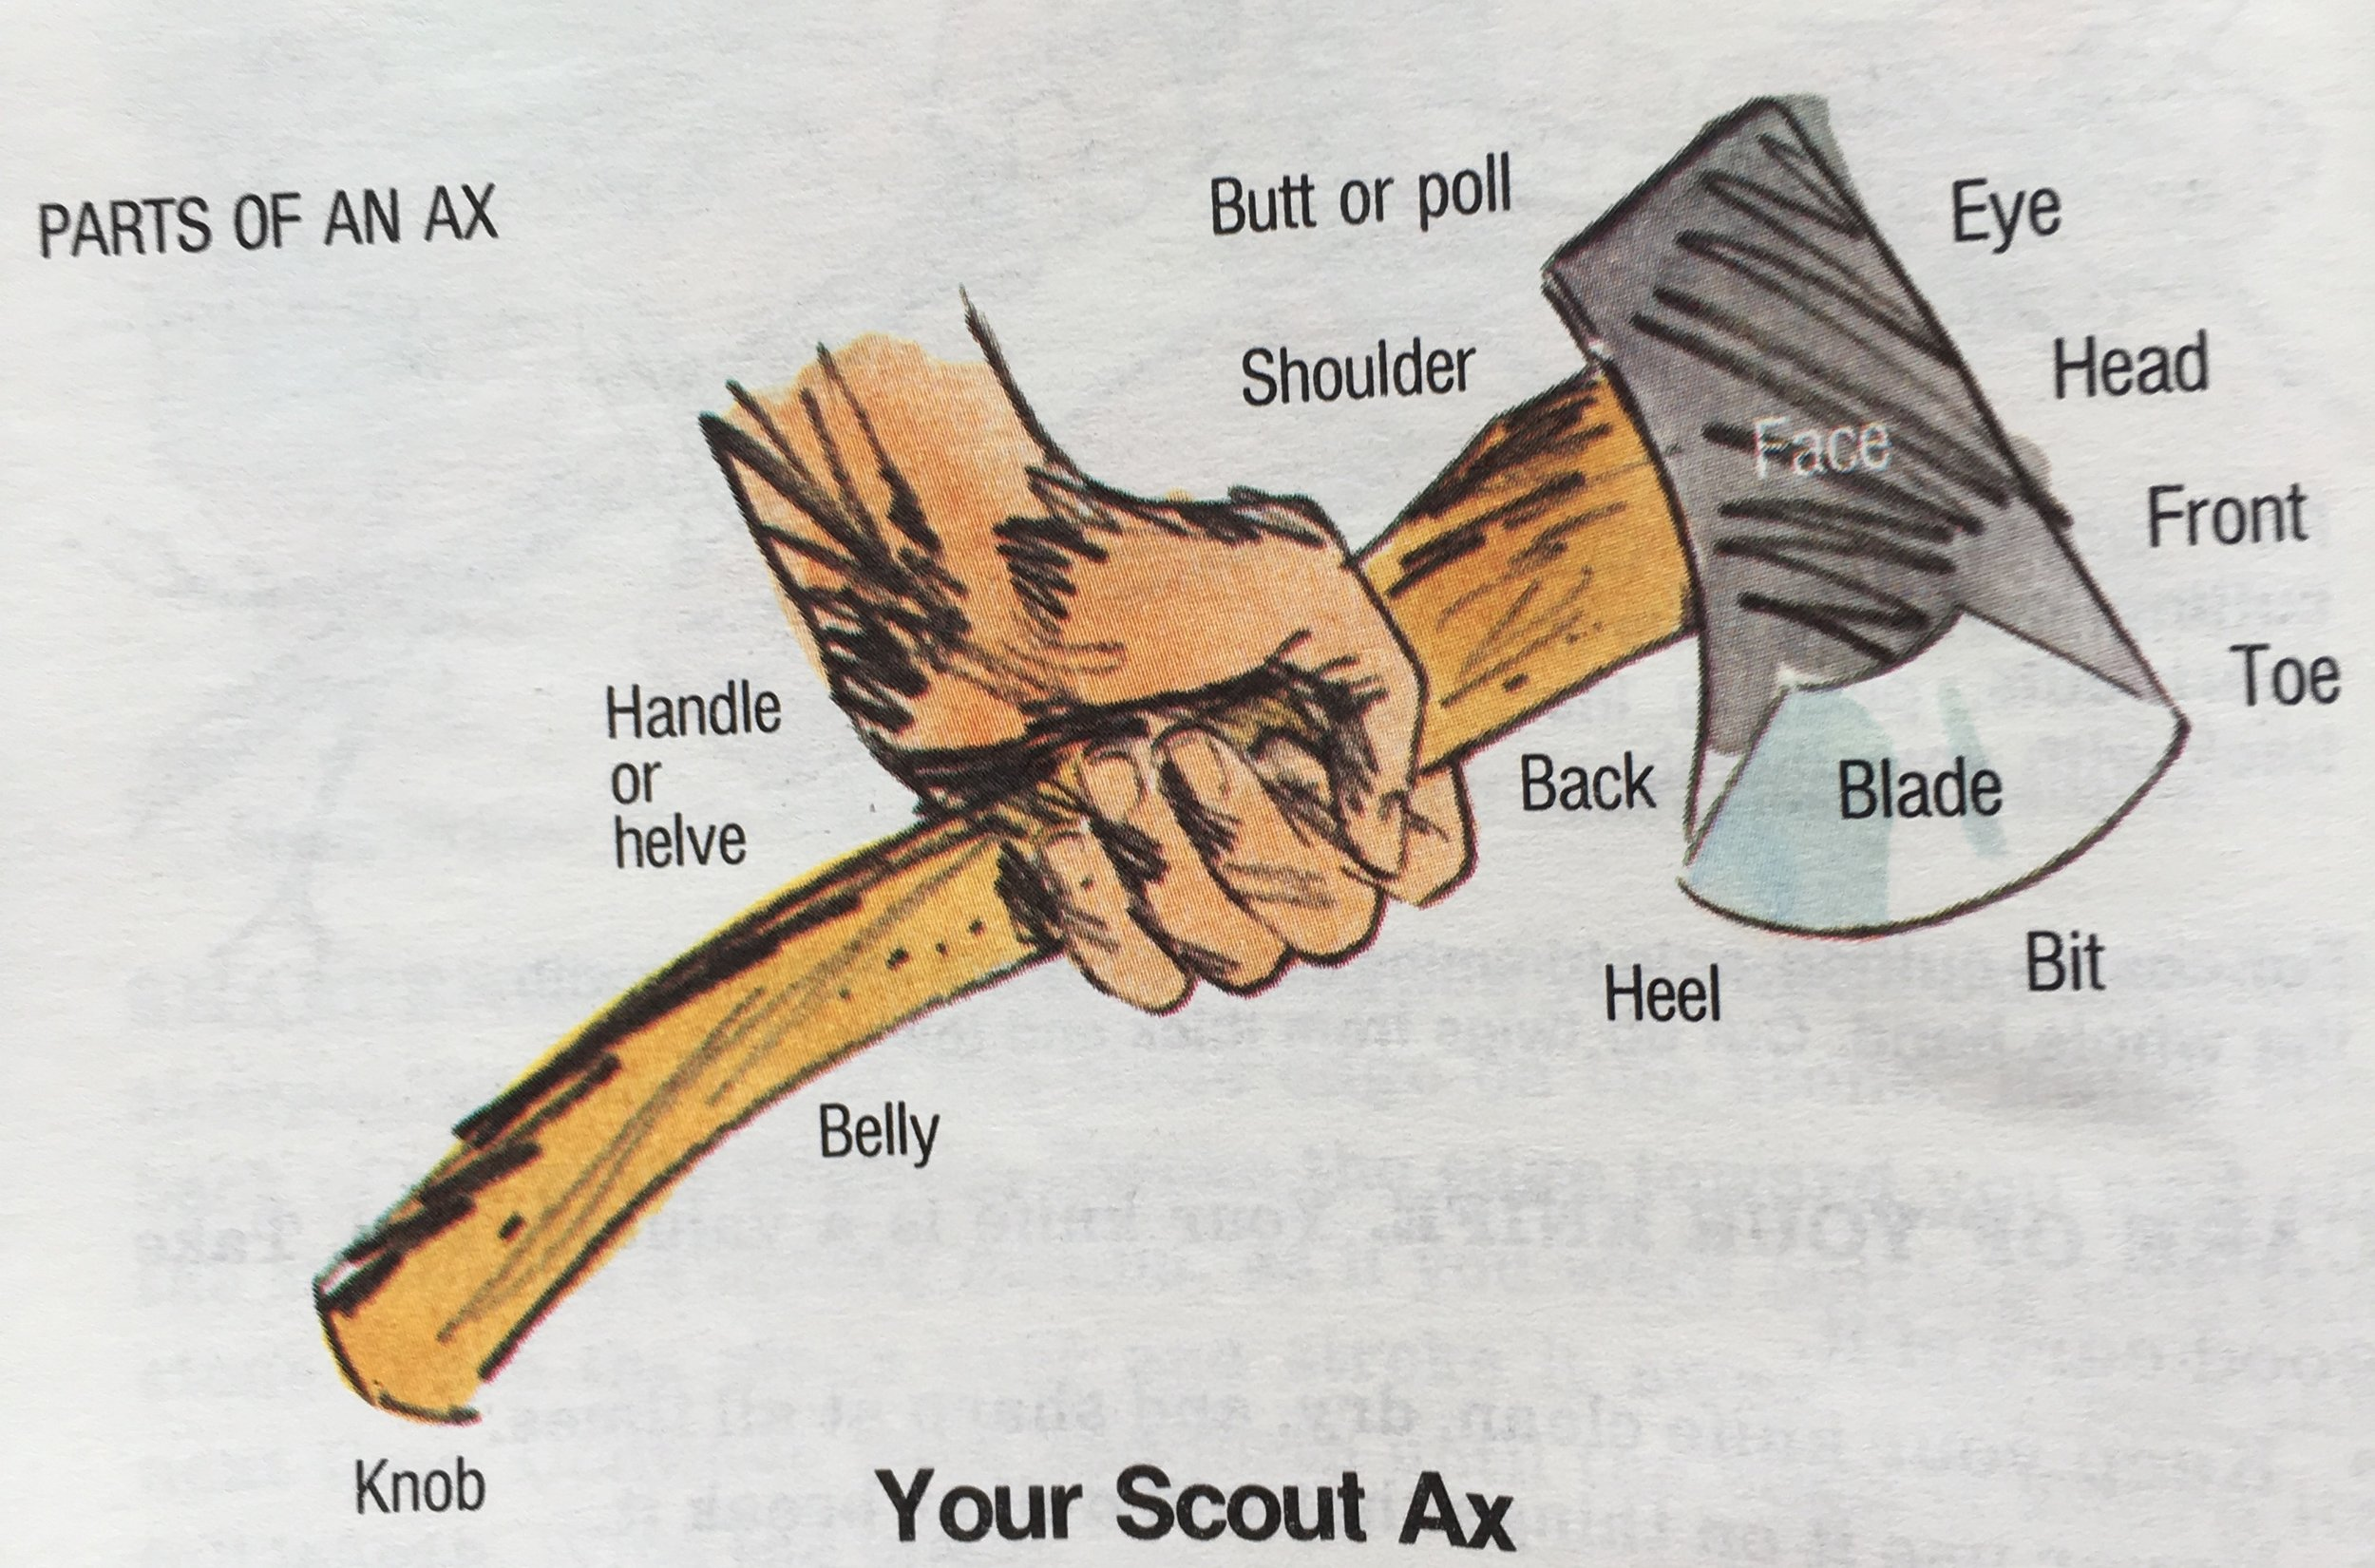 Parts Of An Ax